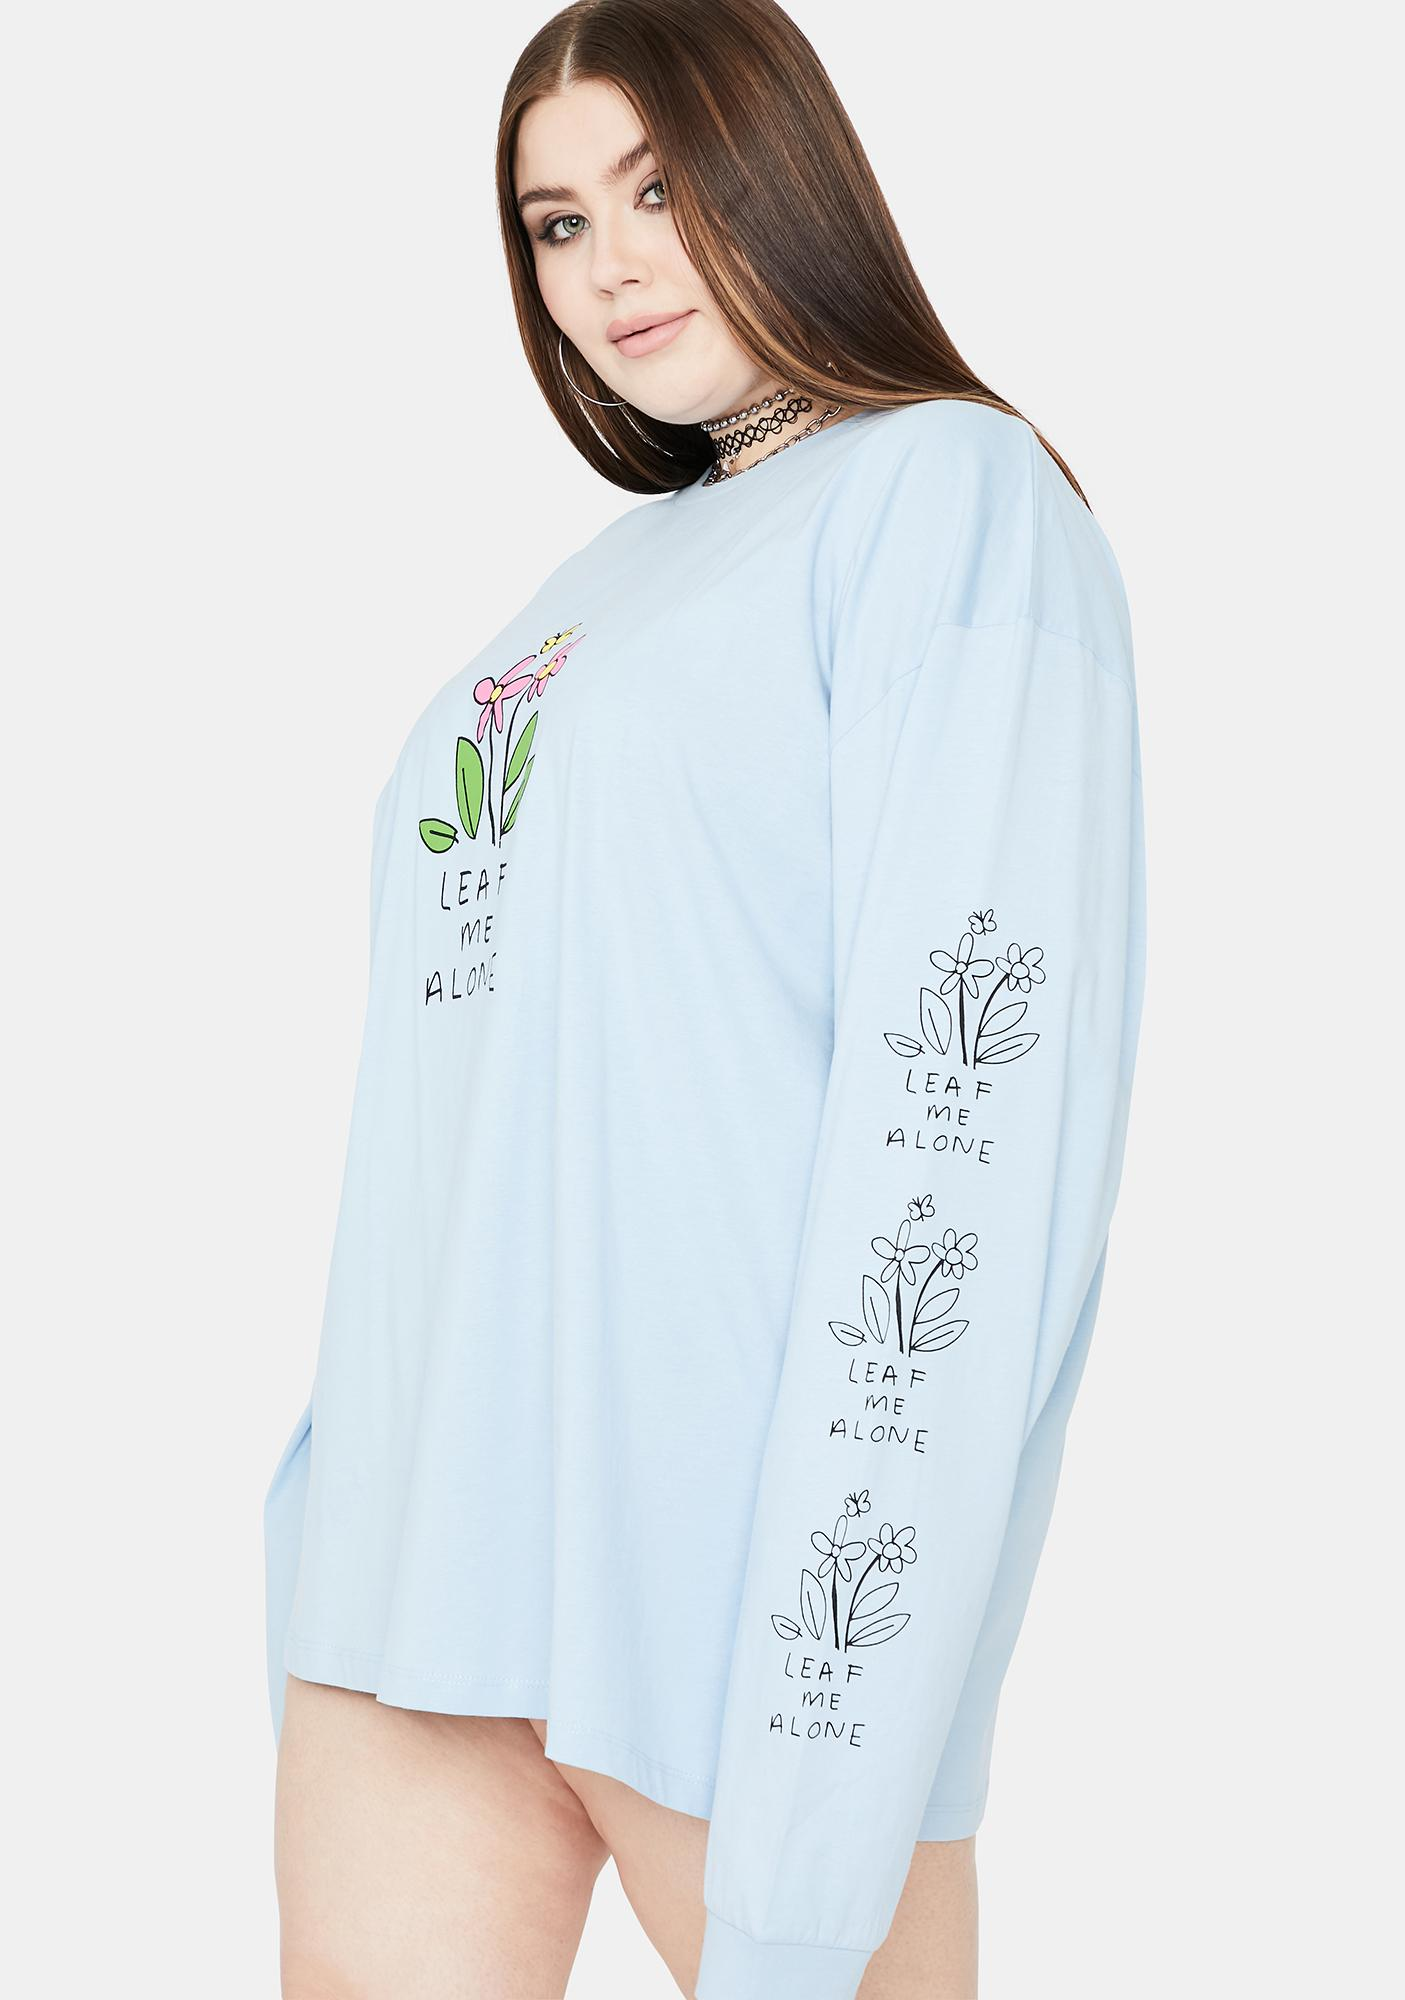 NEW GIRL ORDER Blue Curve Leaf Me Alone Graphic Tee